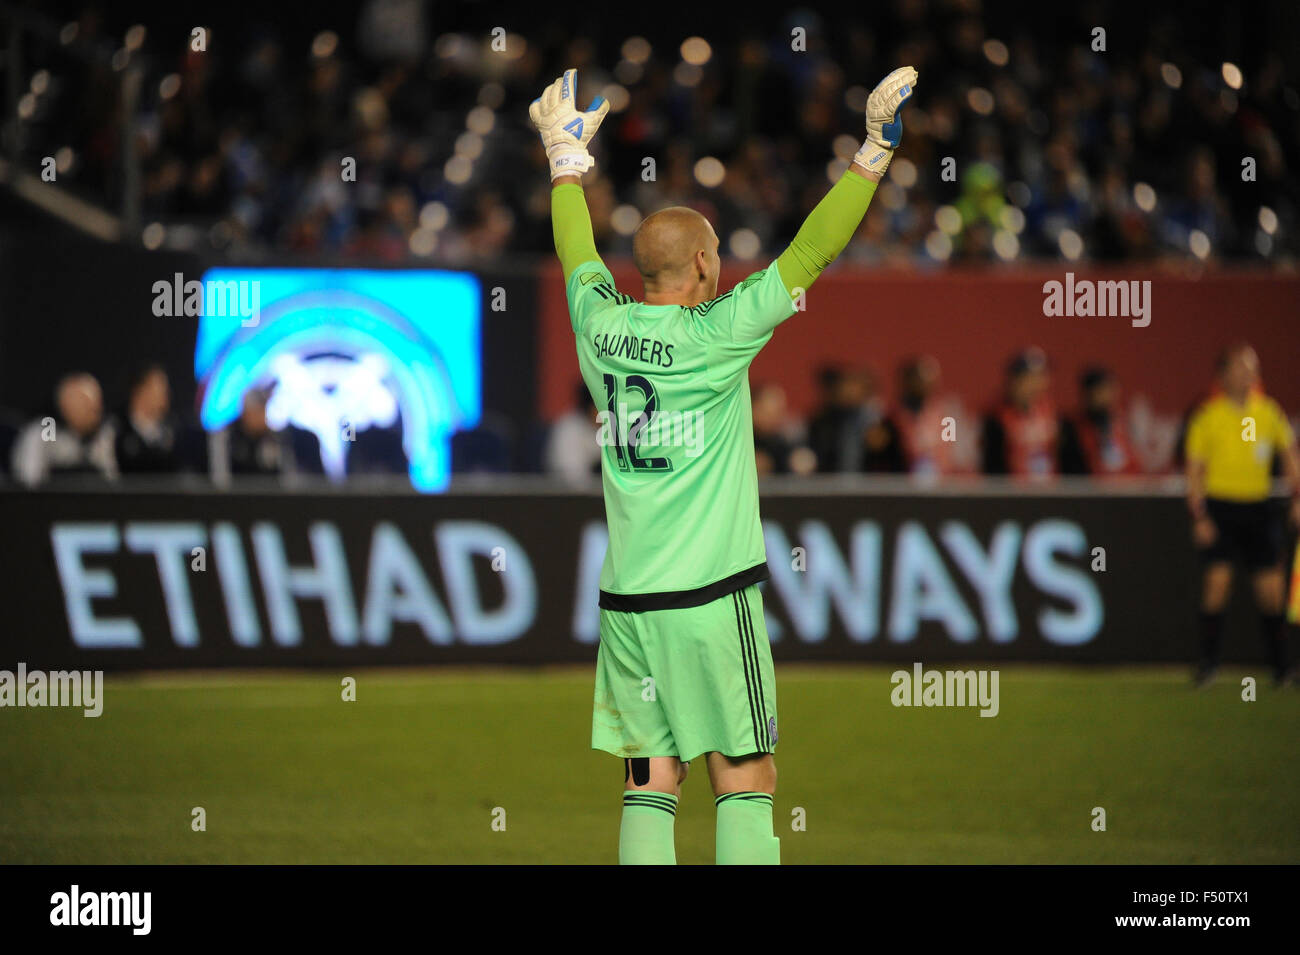 Bronx, New York, USA. 25th Oct, 2015. Josh Saunders (12) of NYCFC in action during a match against New England Revolution, - Stock Image